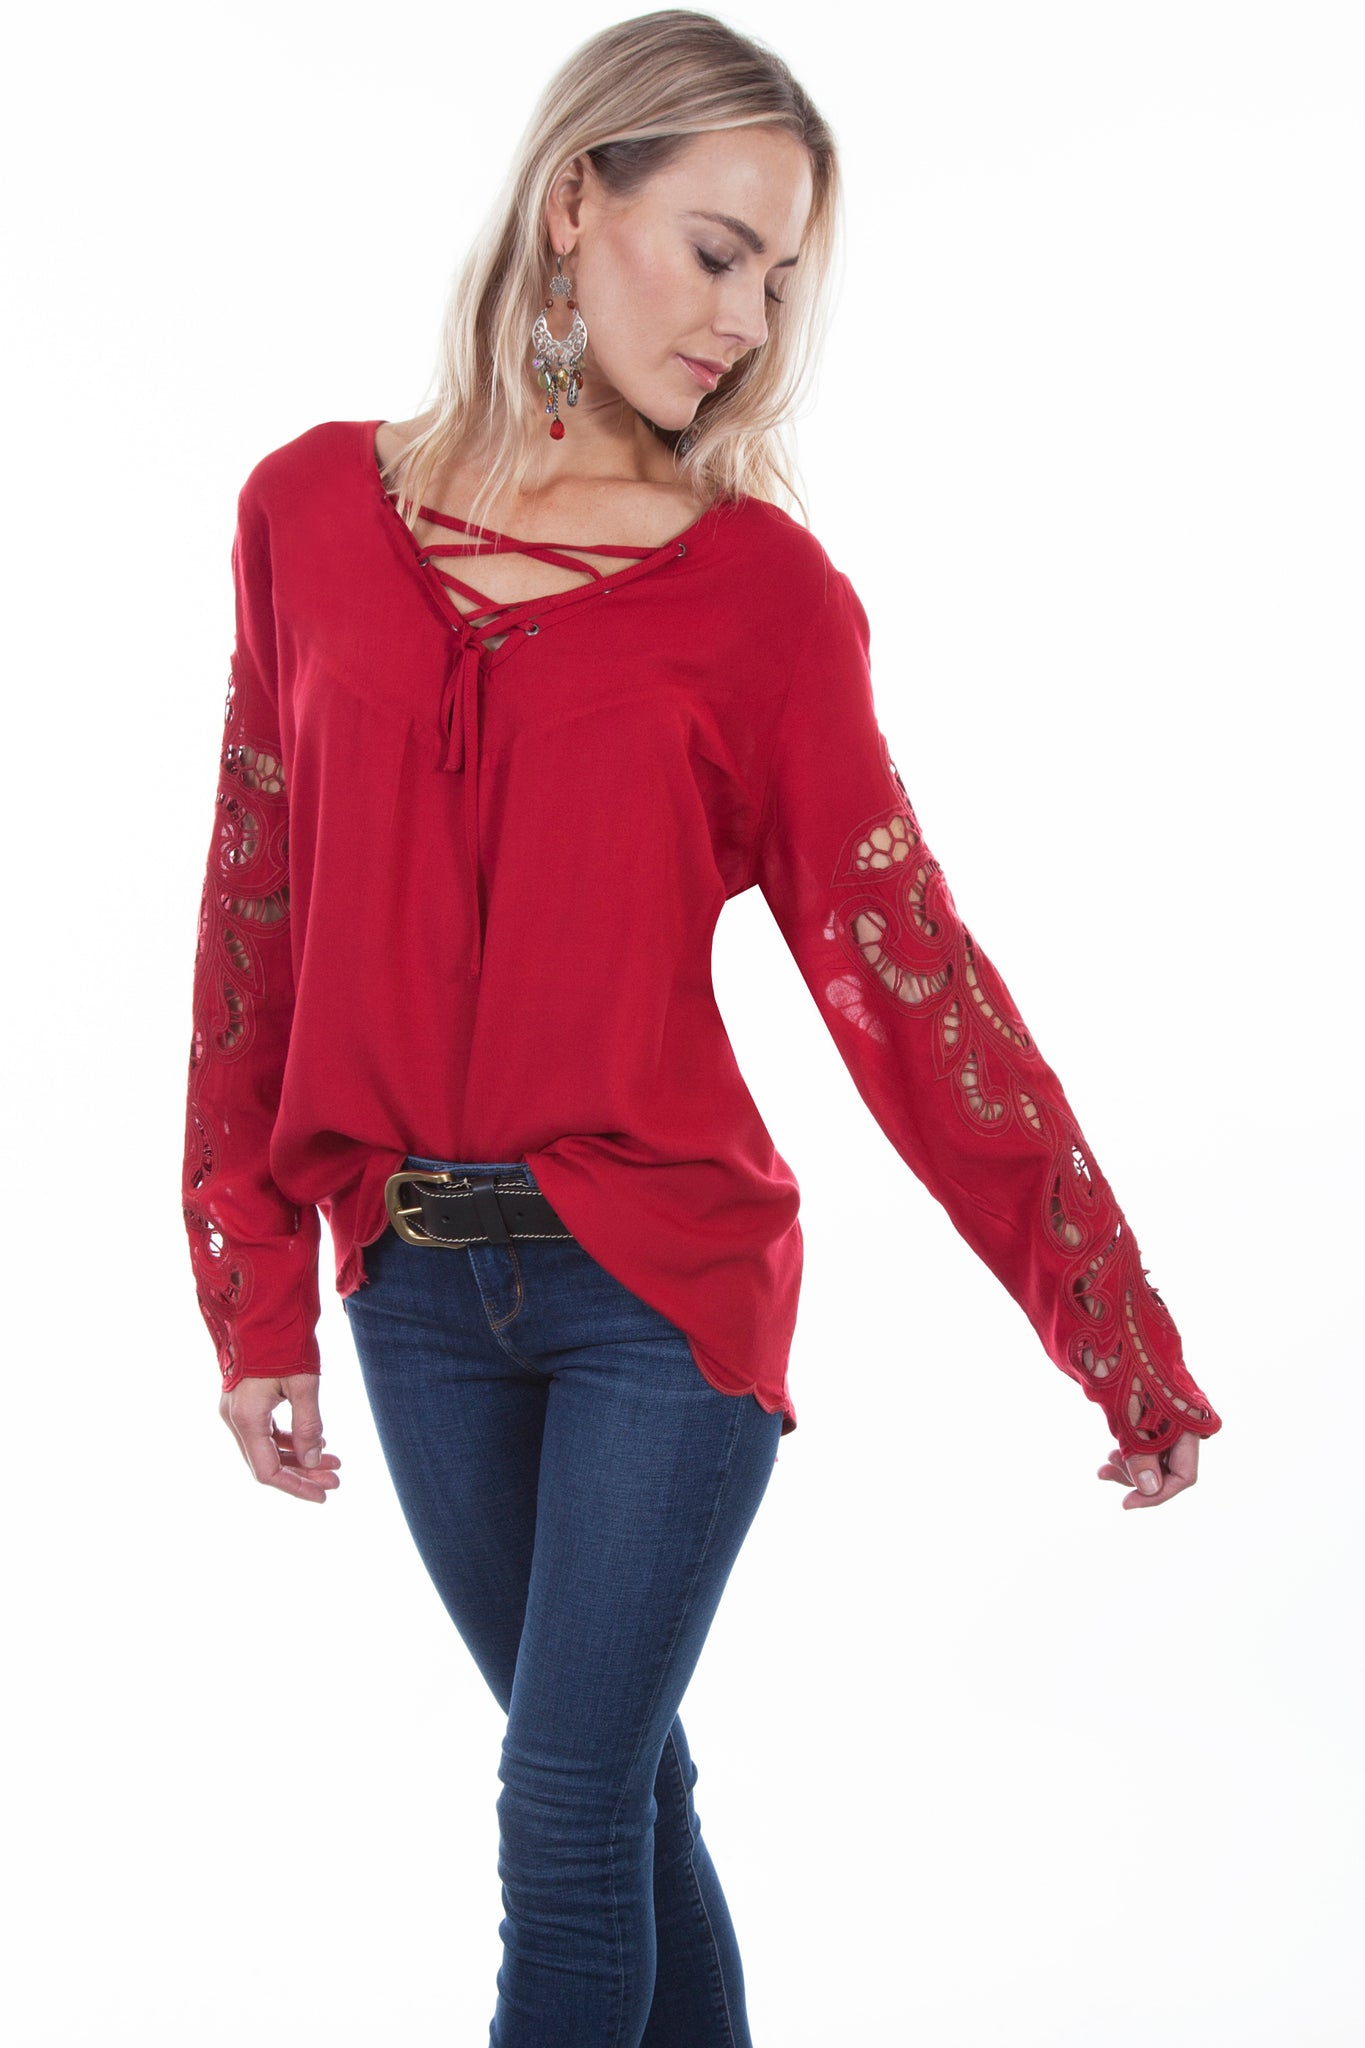 HI/LO Blouse with Crochet Sleeves